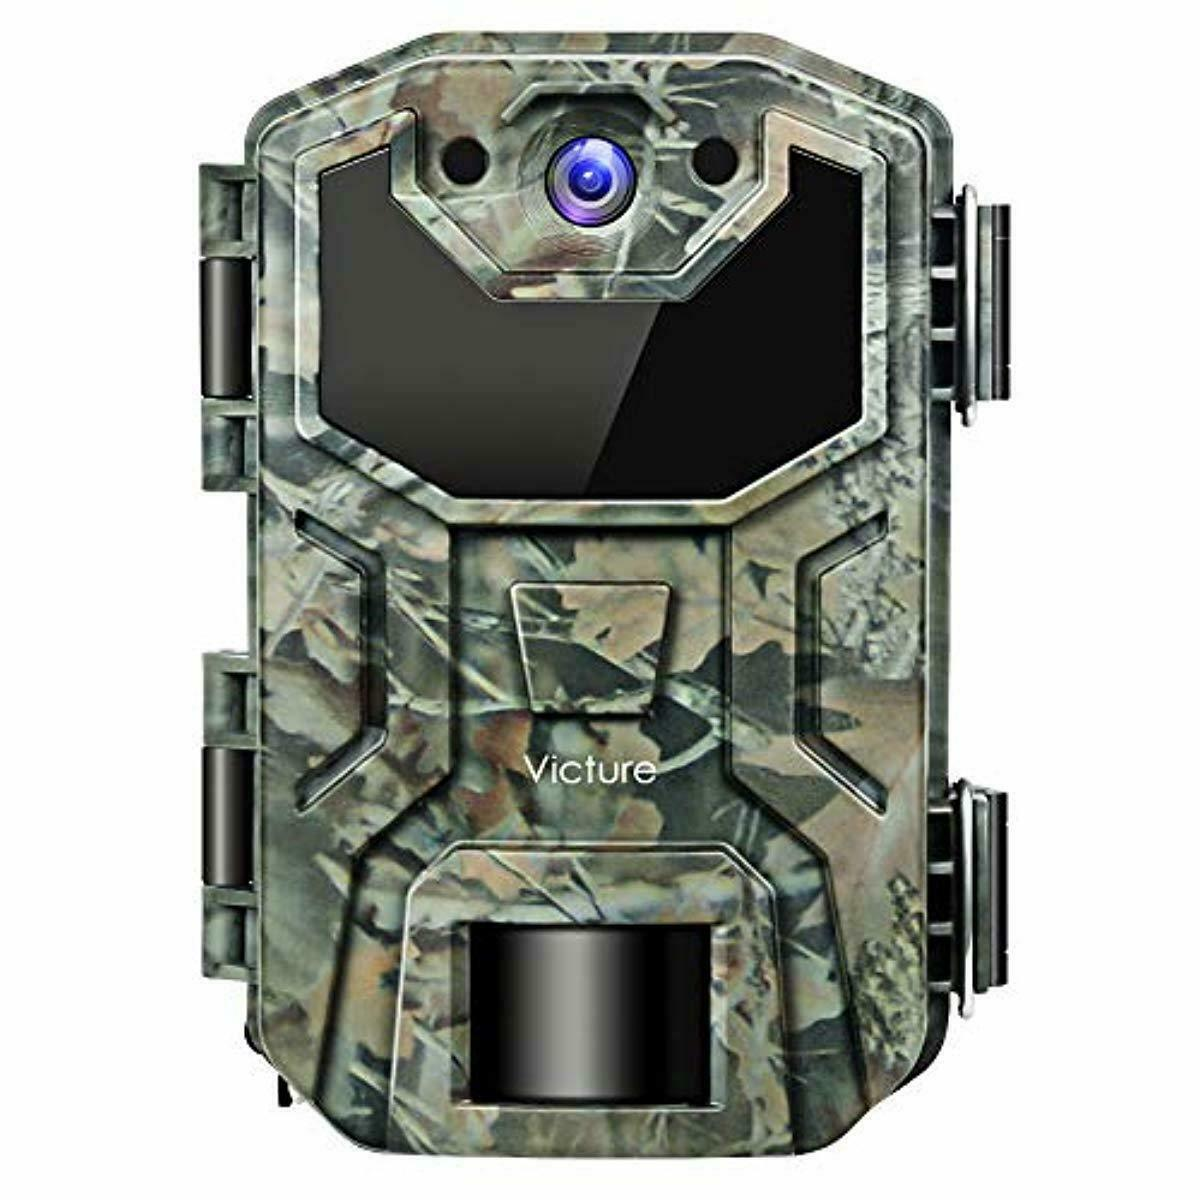 Victure Trail Game Camera 16mp Night Motion Activated Waterproof Design Hunting